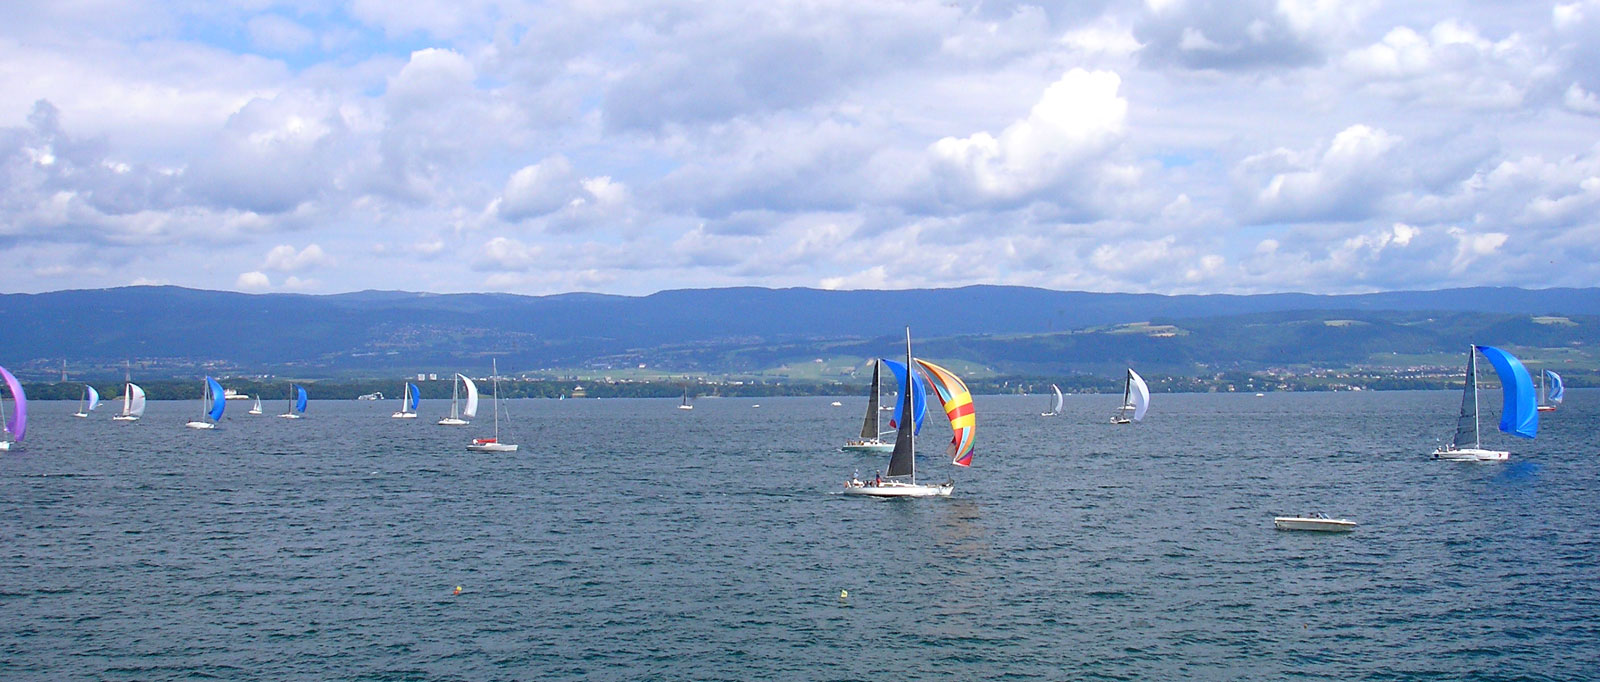 Sailing boats of Bol d'Or Mirabaud in Yvoire on Lake Léman.